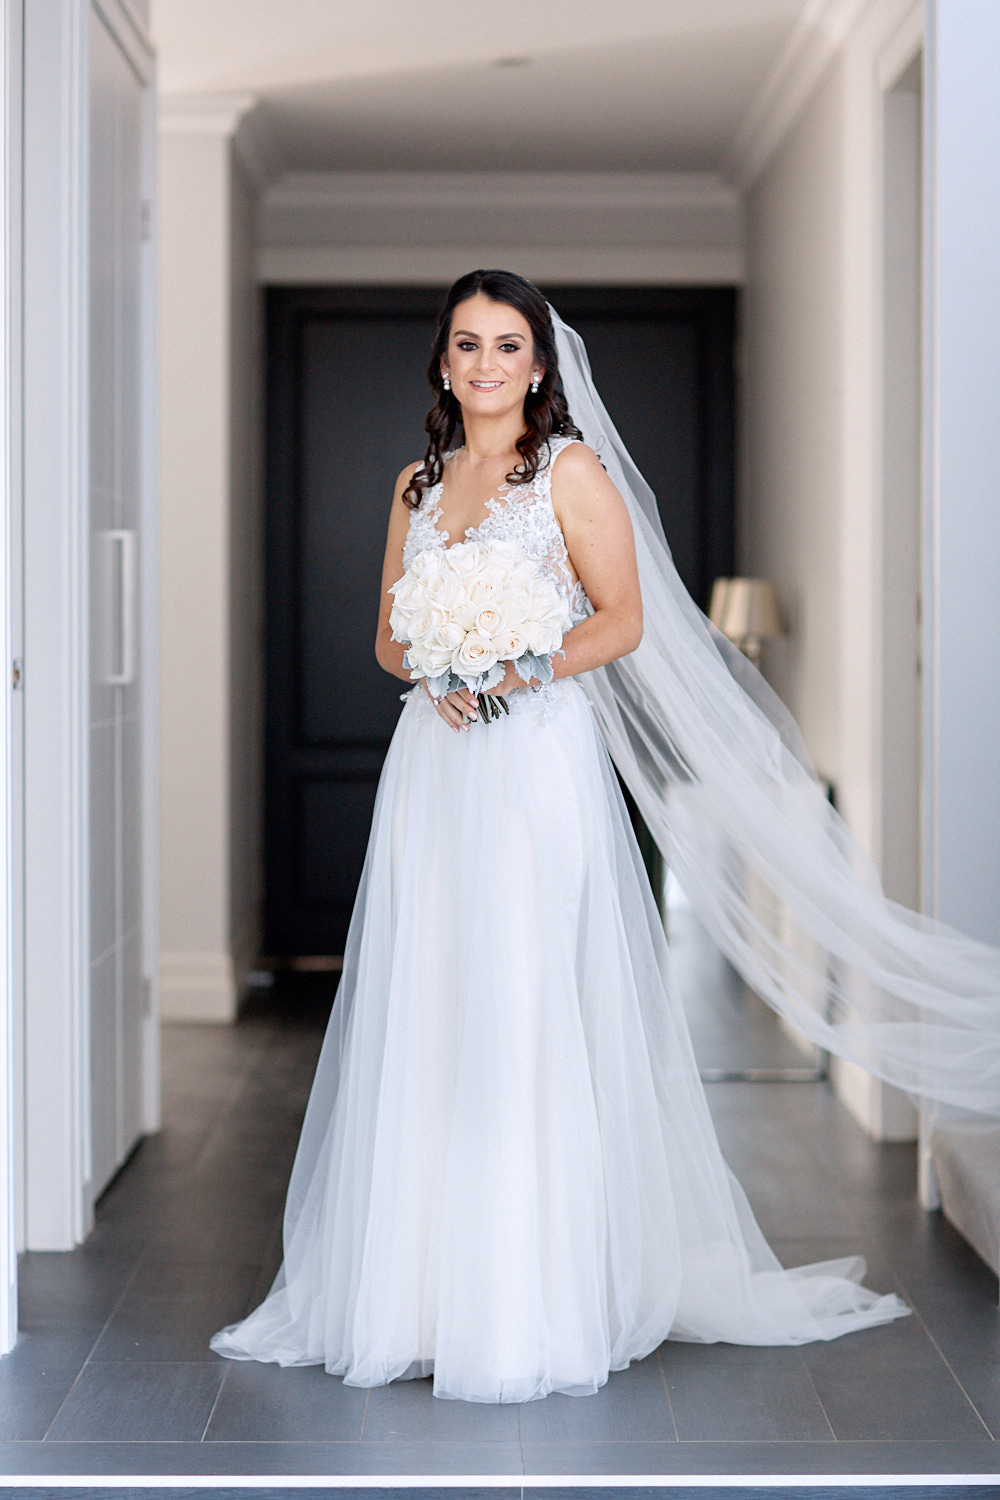 Bride standing in hallway wearing wedding dress and holding a bouquet of white roses by Blue Mountains wedding photographer Joshua Witheford